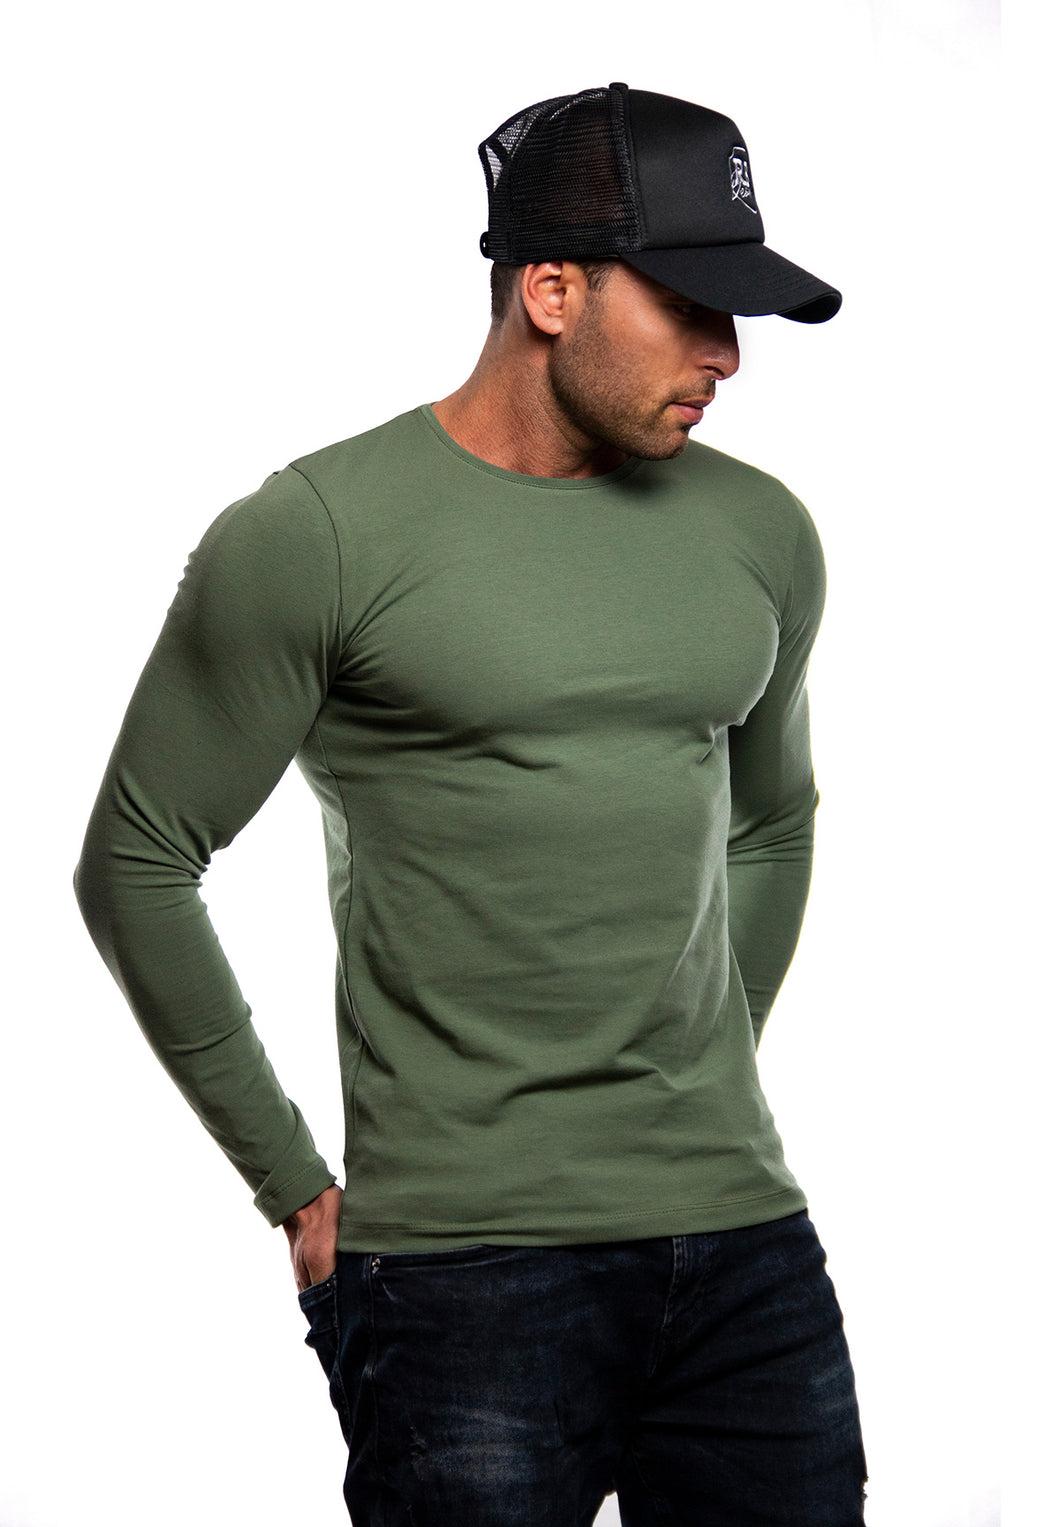 Plain Army Green Crew Neck Long Sleeve T-shirt / Khaki Color